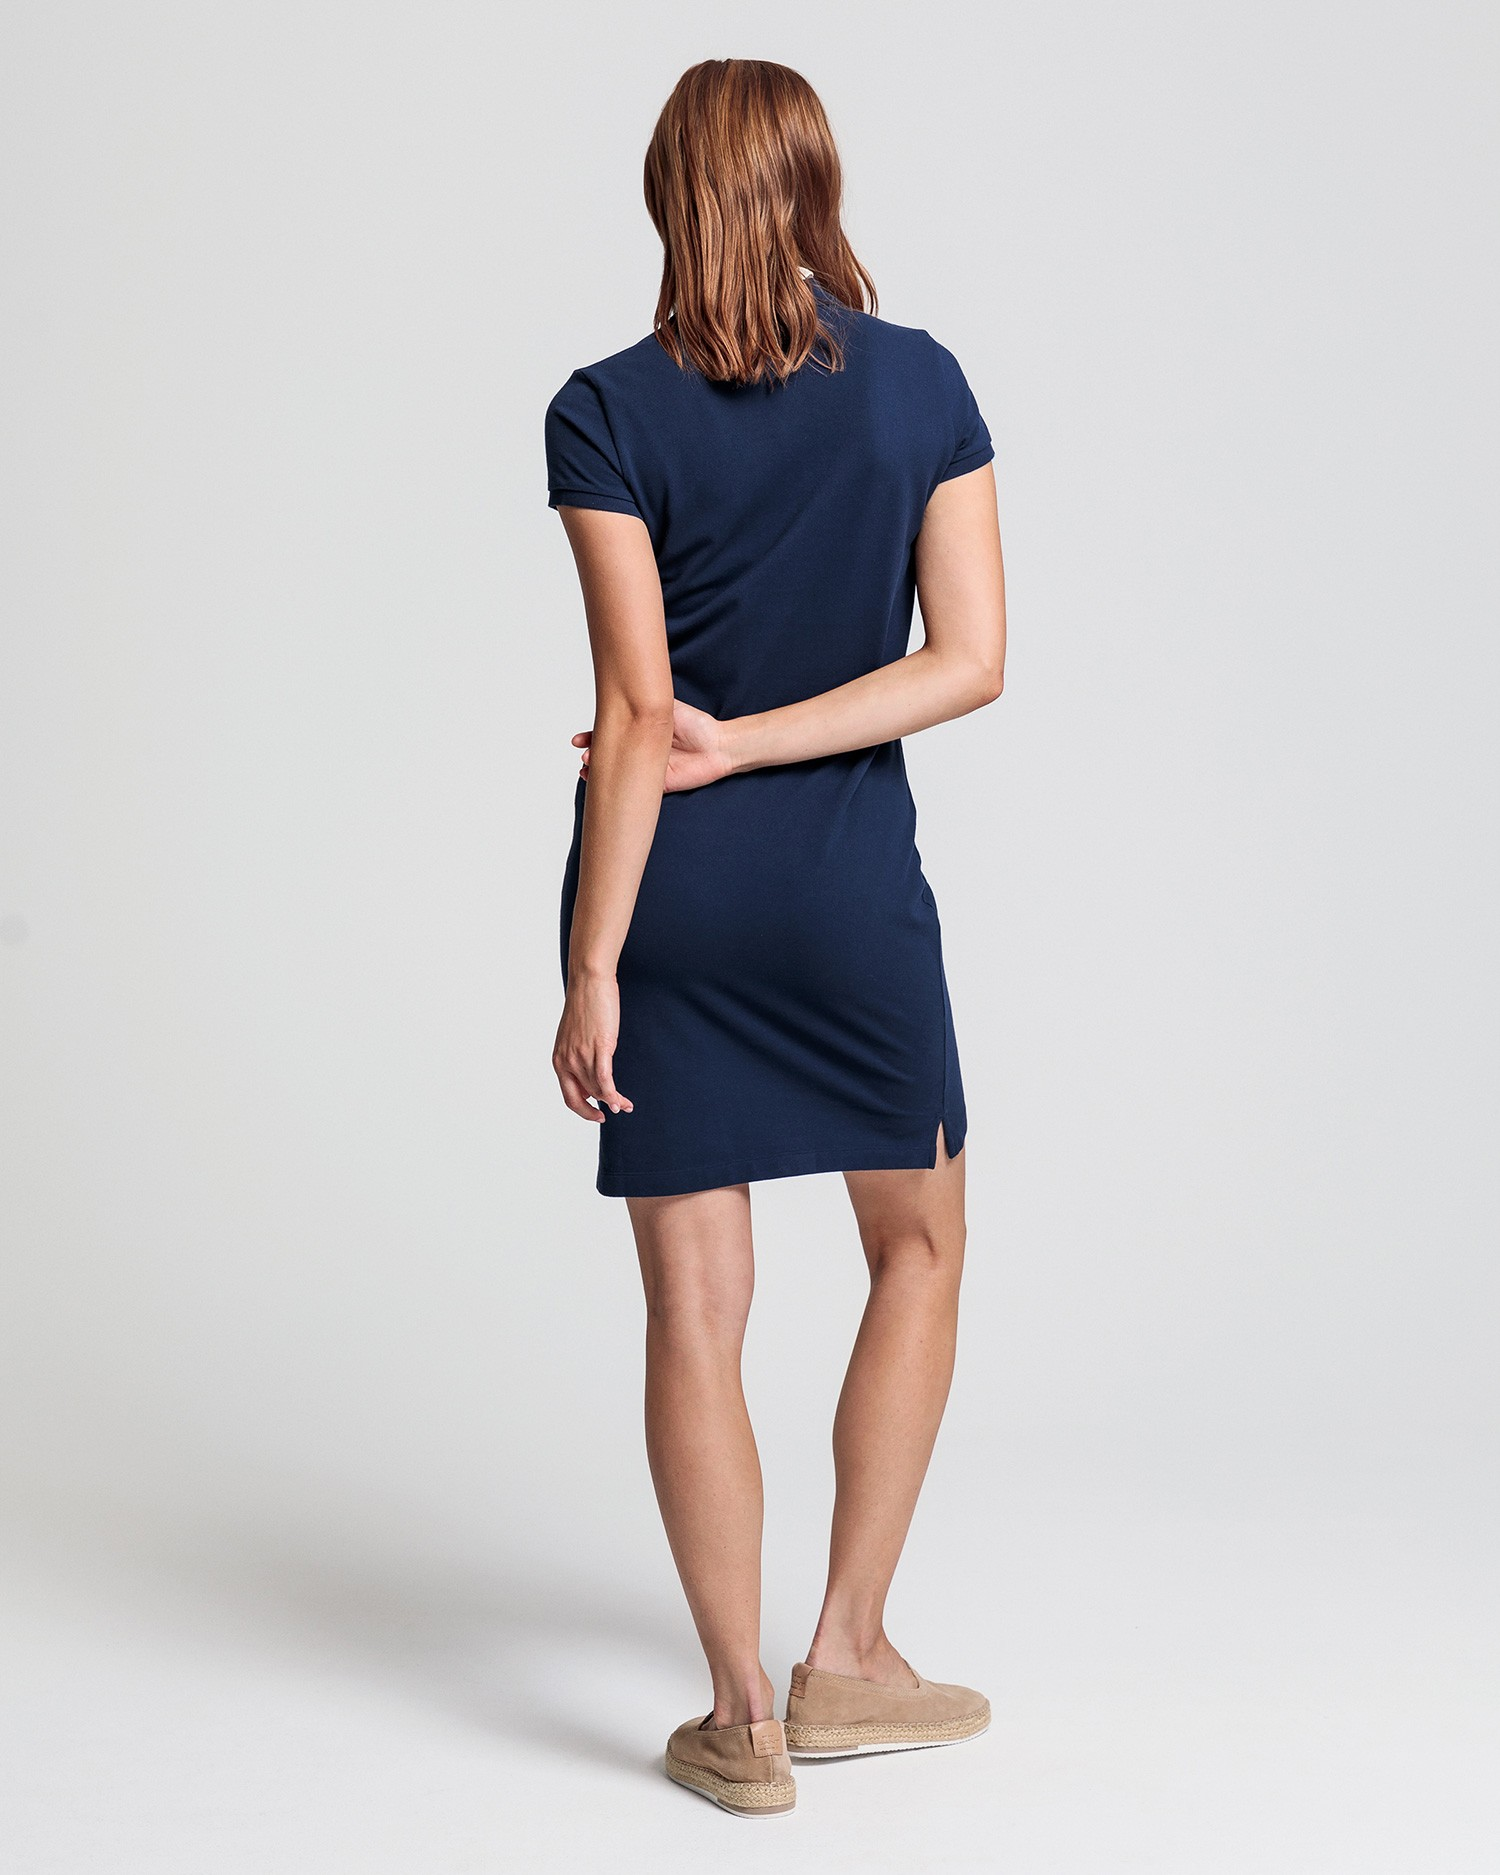 GANT Women's Dress - 402300